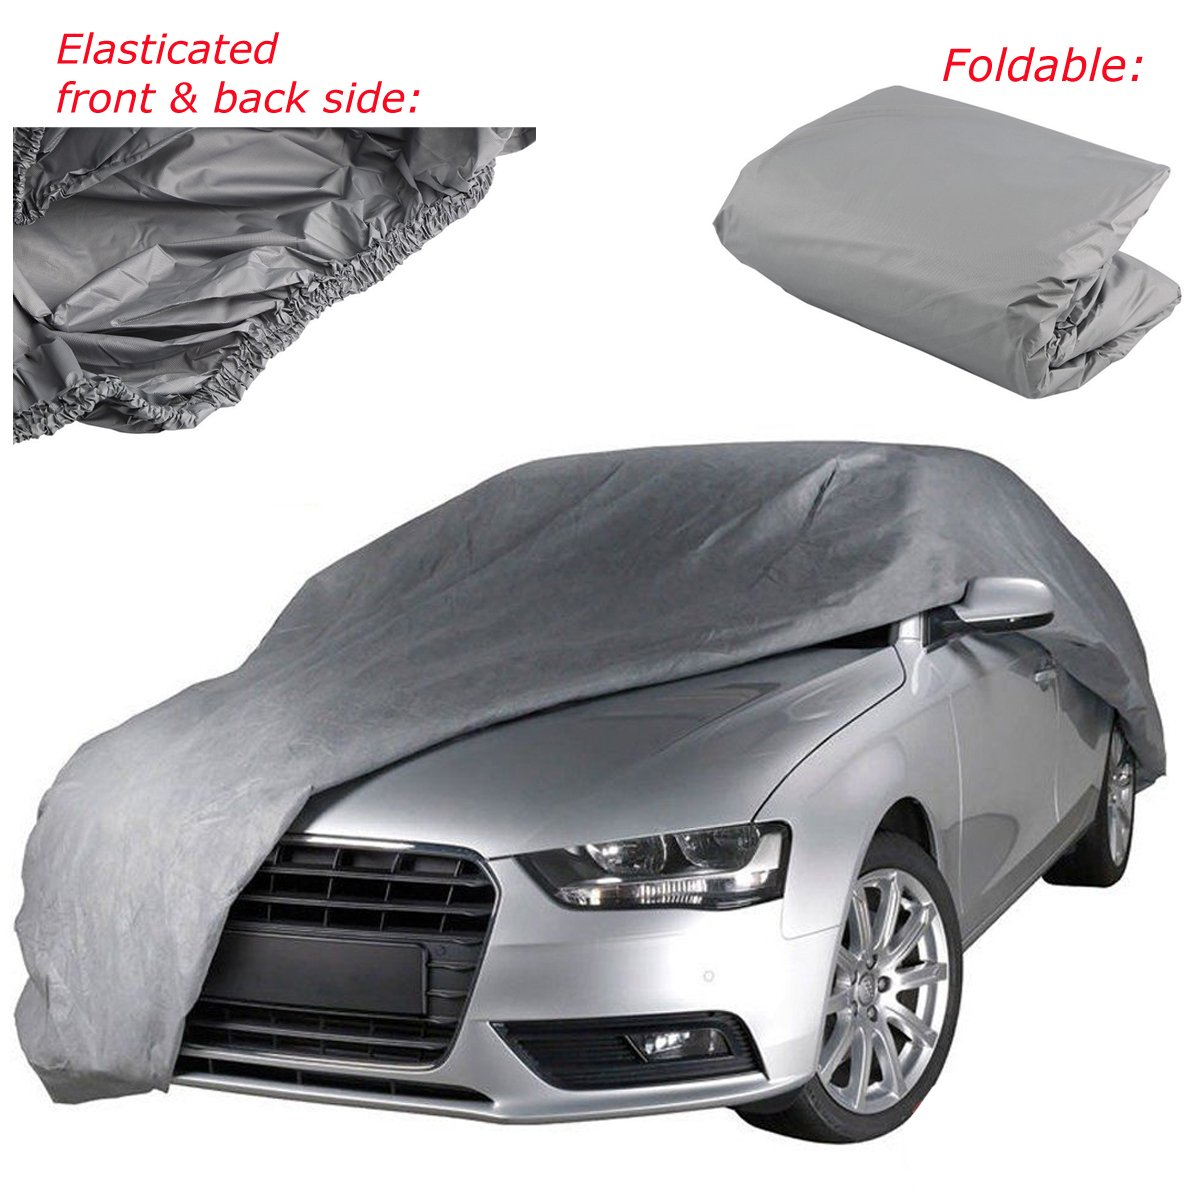 NEW PEVA FULL CAR COVER PROTECTOR ELASTICATED LARGE UNIVERSAL WITH CARRY BAG